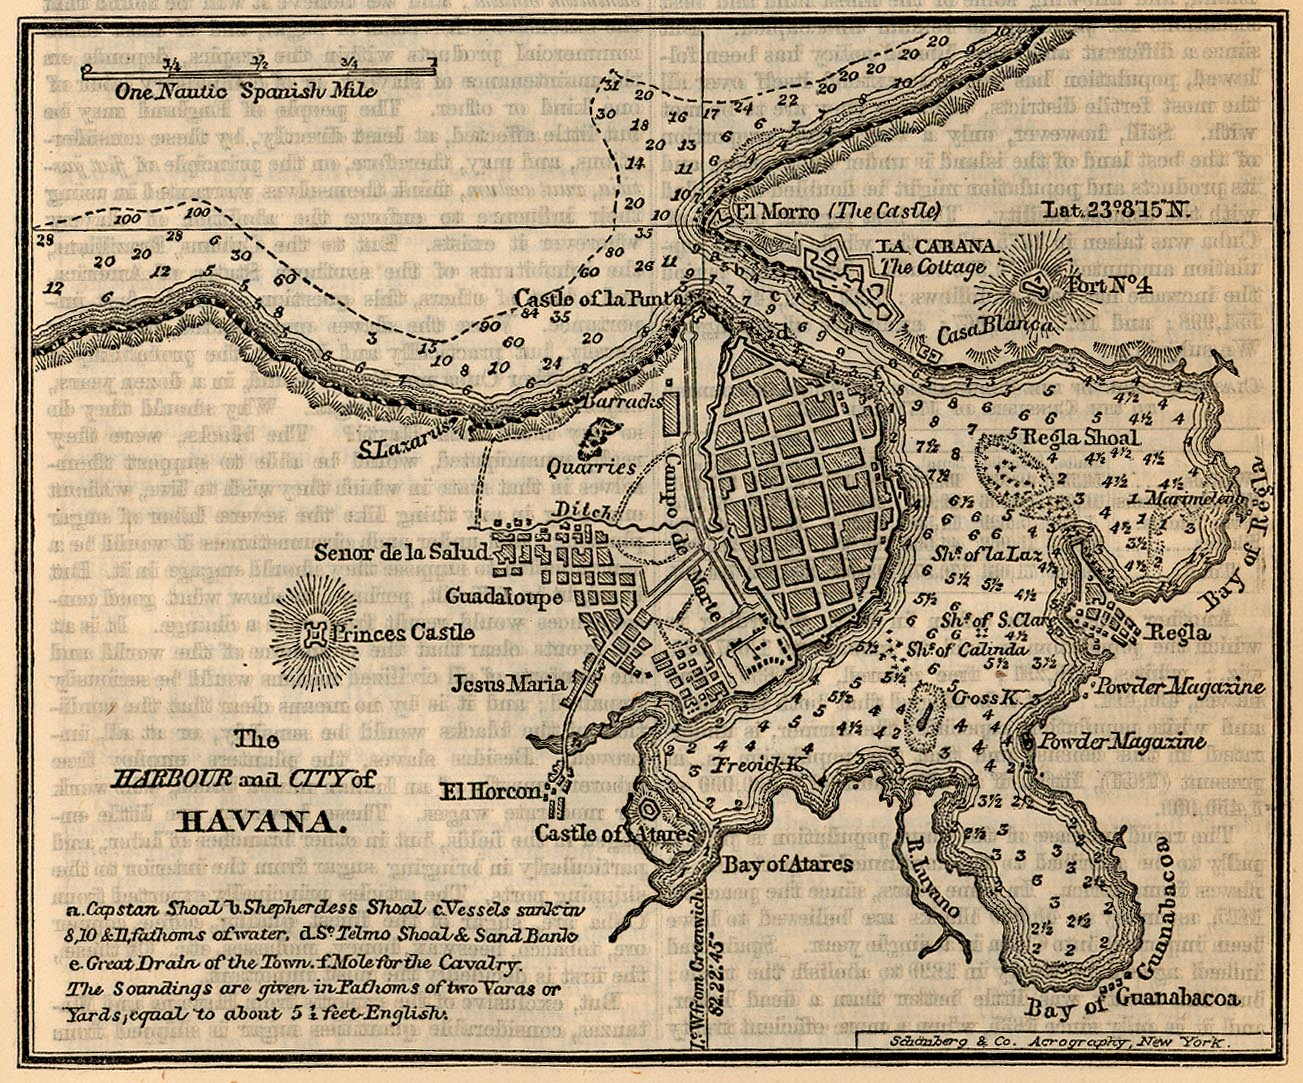 Havana Harbour and City Map, Cuba 1858